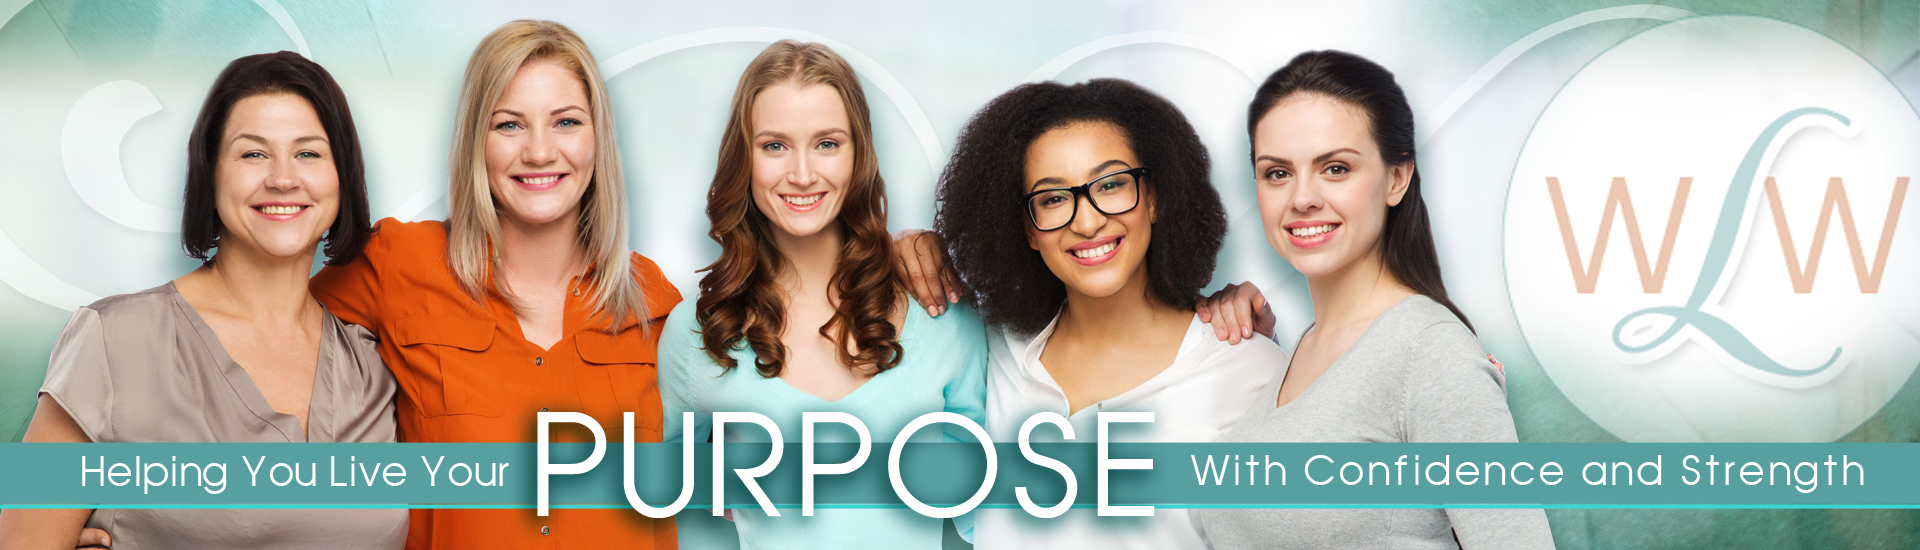 Women Leading Women | Helping You Live Your PURPOSE with Confidence and Strength